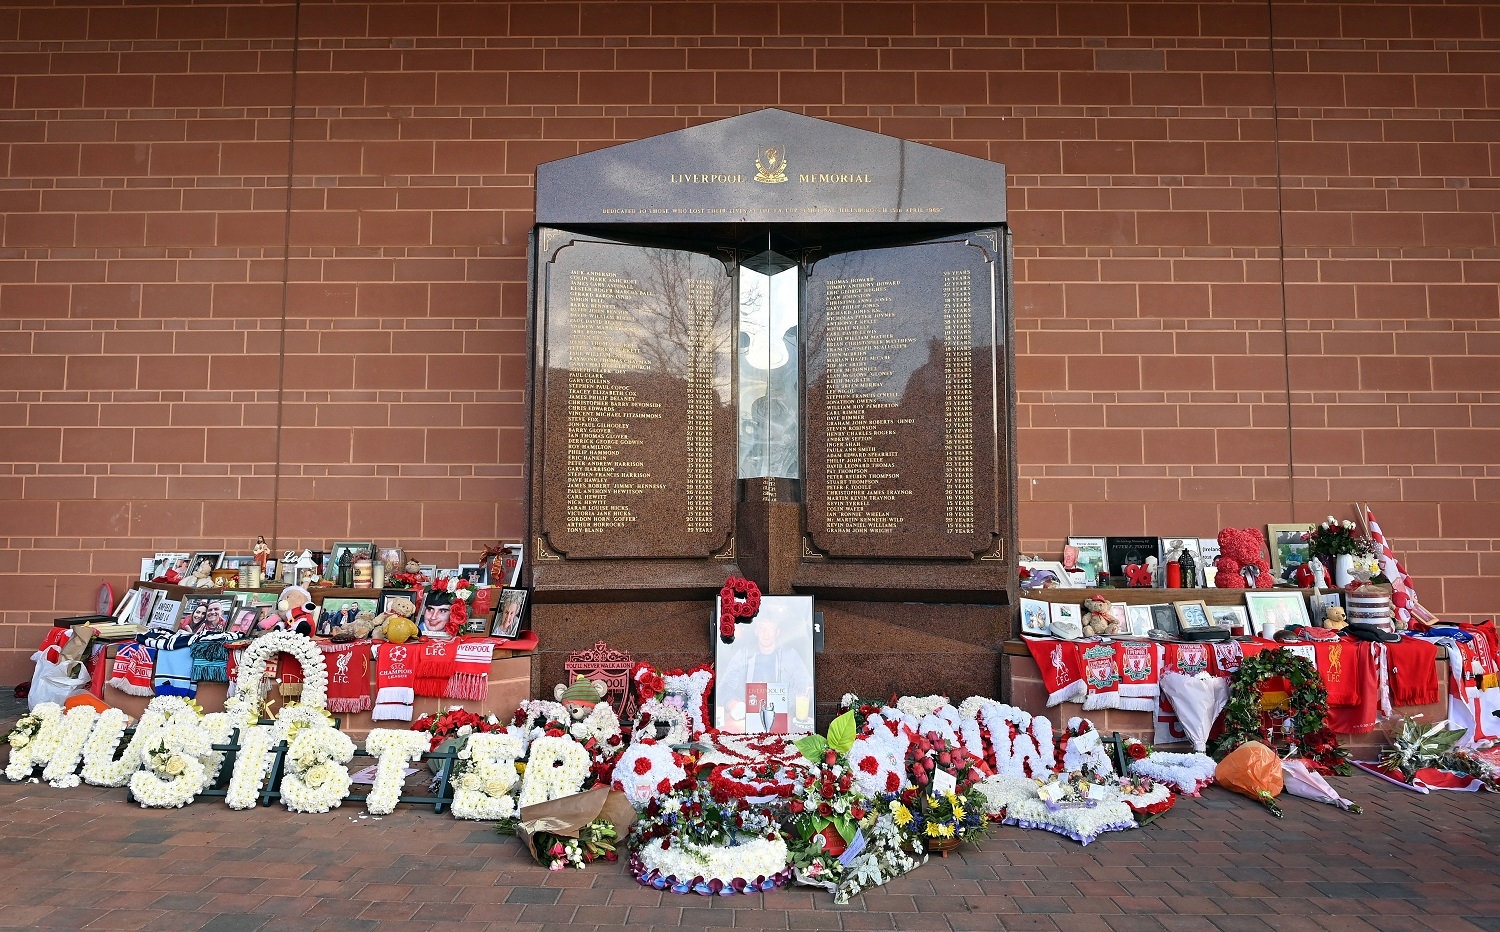 Flowers, shirts, and photos surround the eternal flame of the Hillsborough memorial at Anfield in Liverpool.